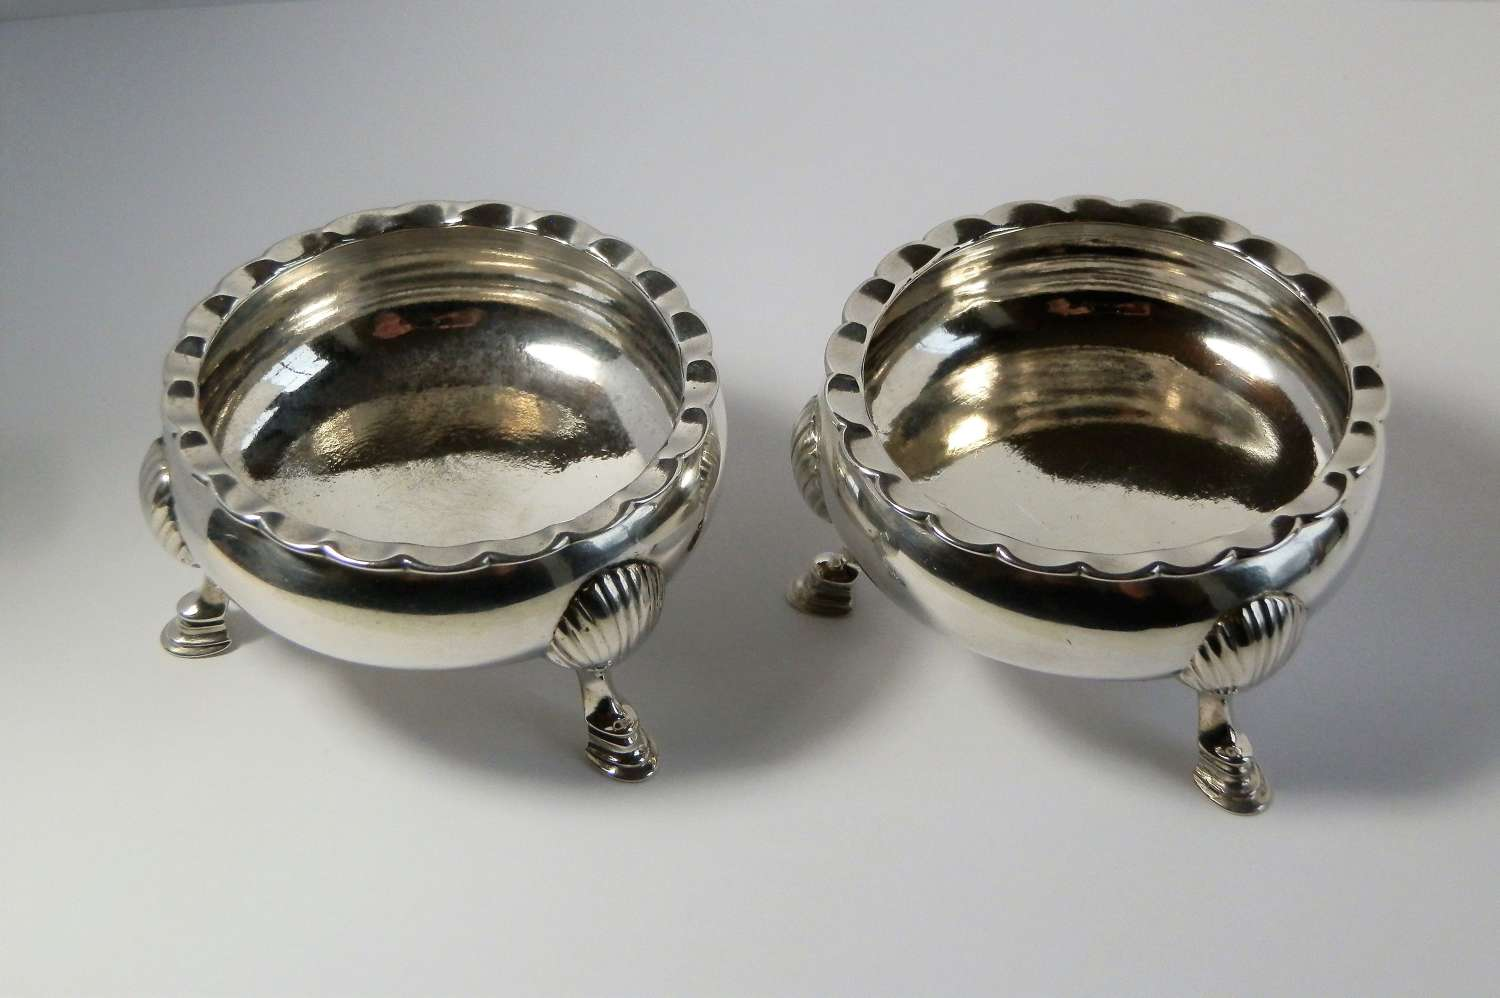 Scottish Provincial silver pair of salts, Aberdeen, J. Erskine c.1790